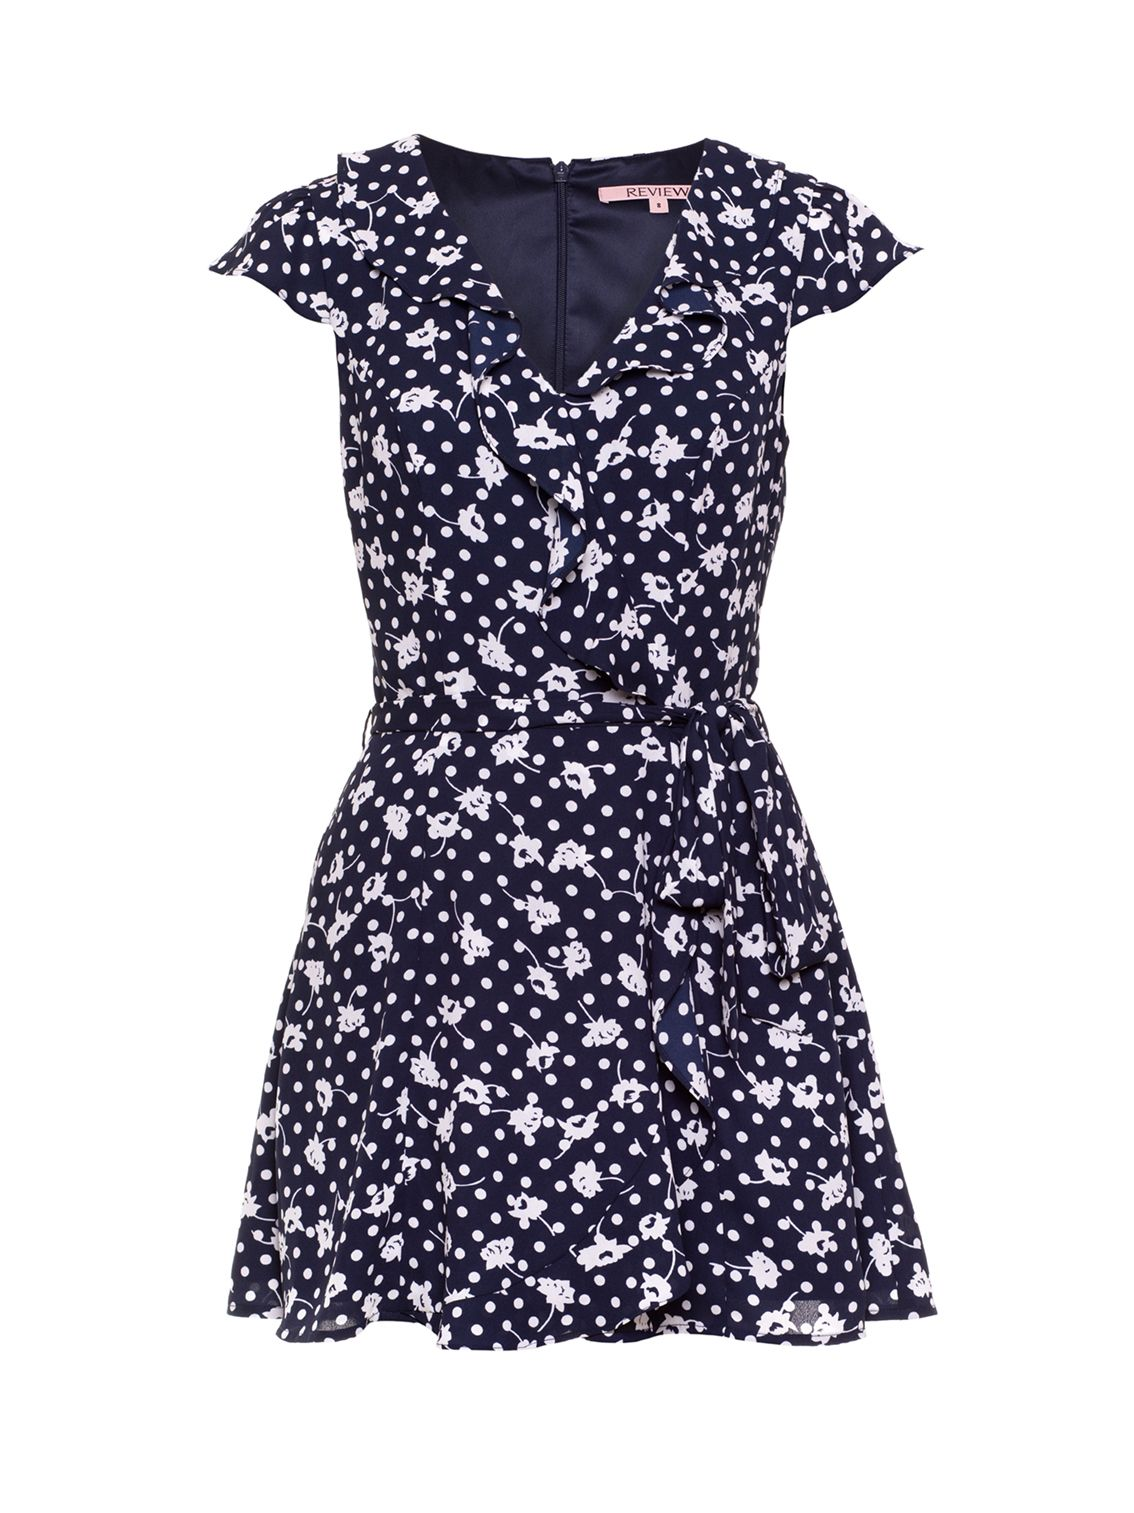 Domino Playsuit Navy And White Playsuit In 2019